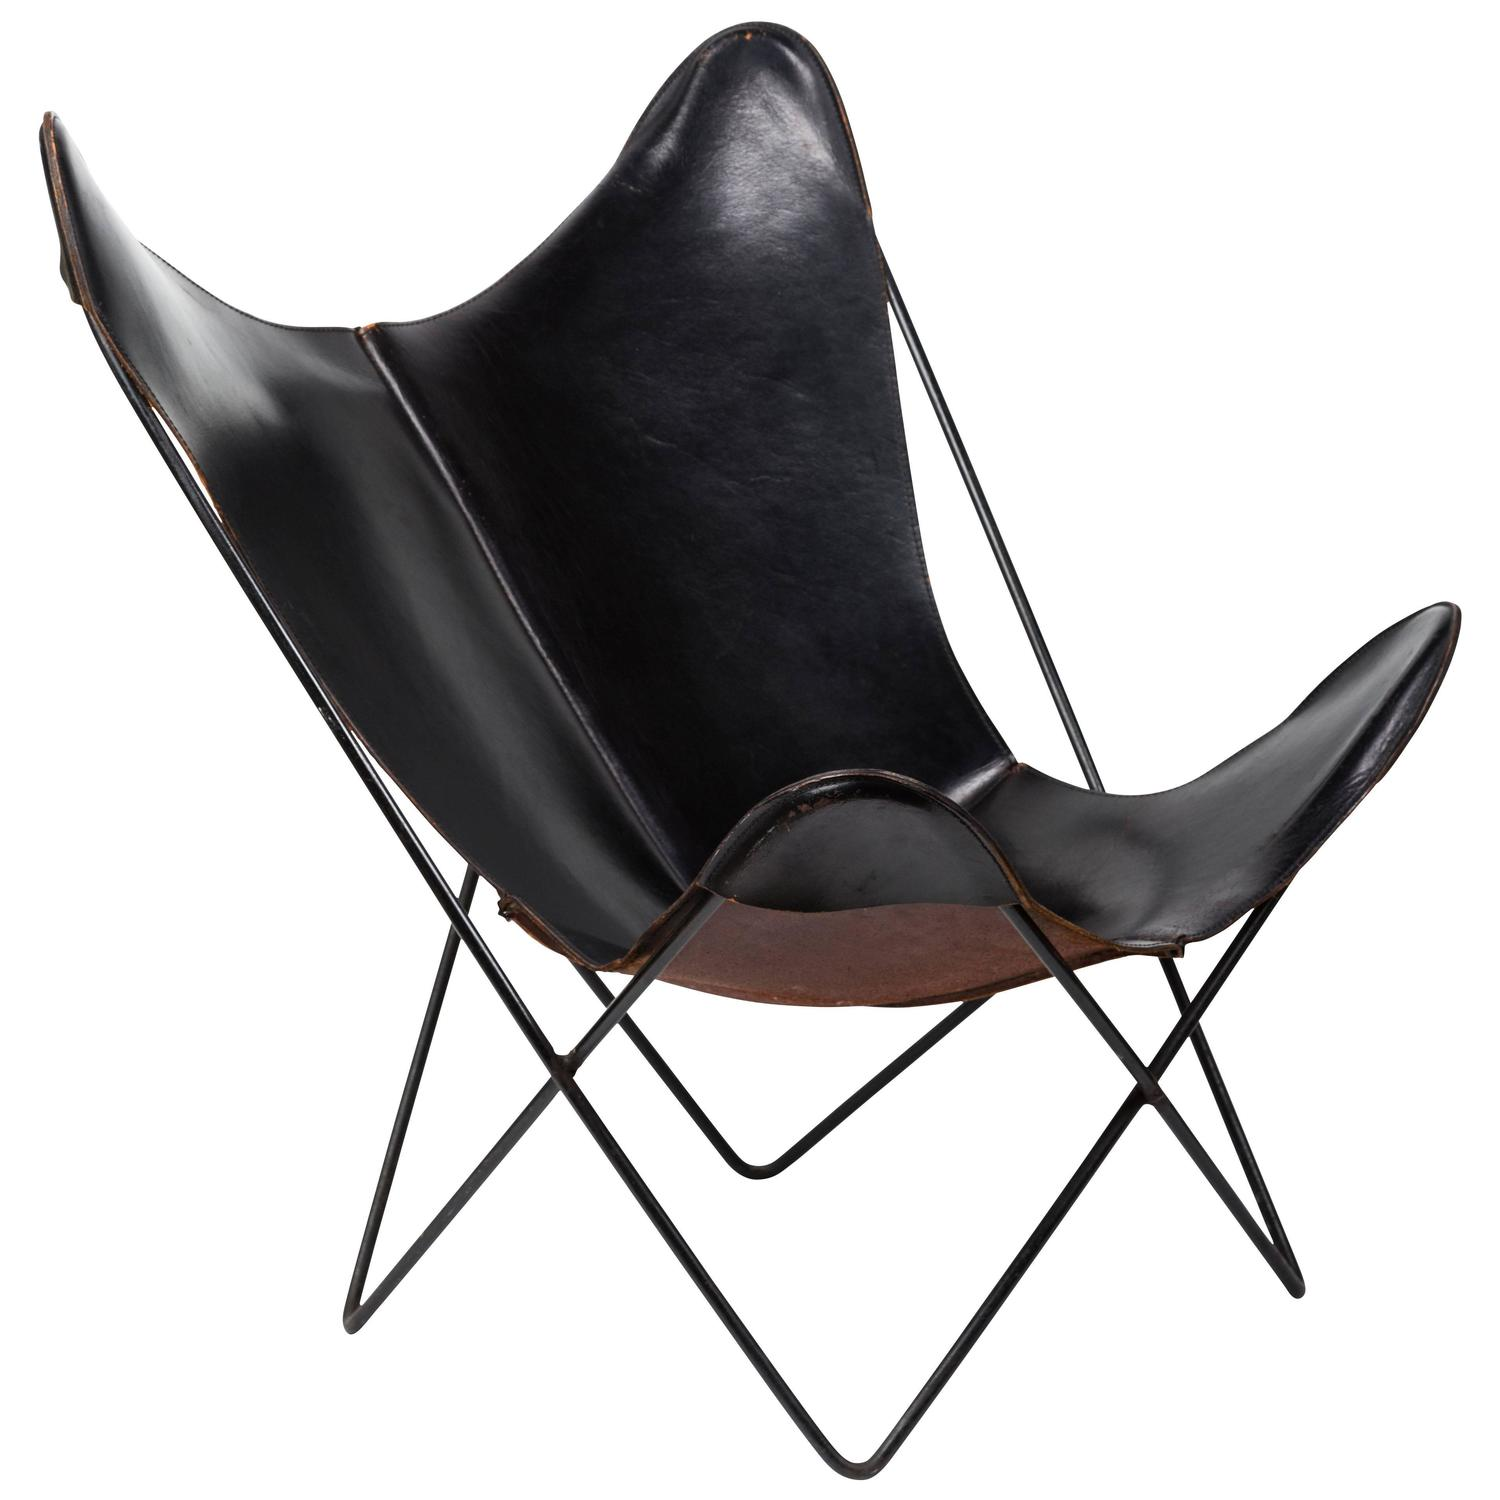 Butterfly chair original - Leather Butterfly Chair By Jorge Ferrari Hardoy For Knoll For Sale At 1stdibs